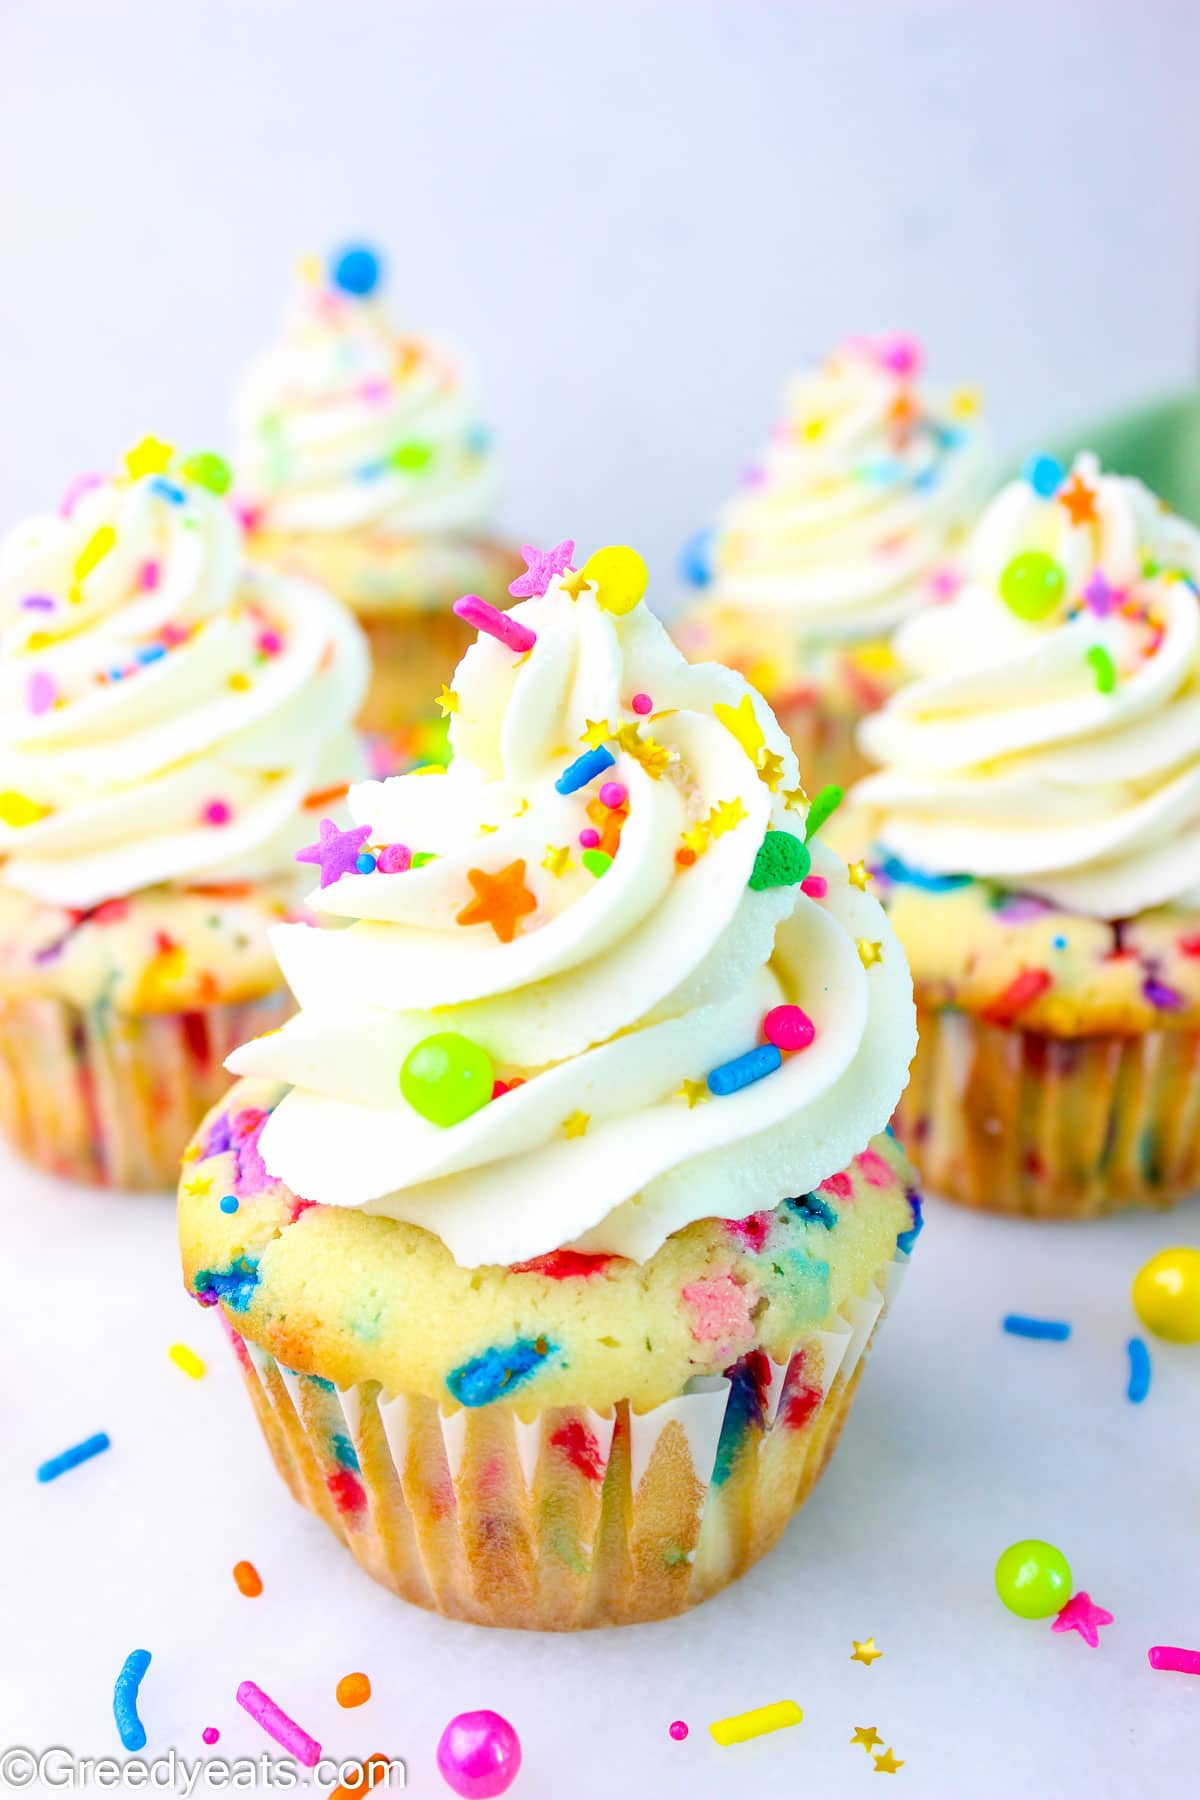 Fluffy Funfetti Cupcakes topped with swirls of Vanilla Buttercream Frosting and rainbow sprinkles.